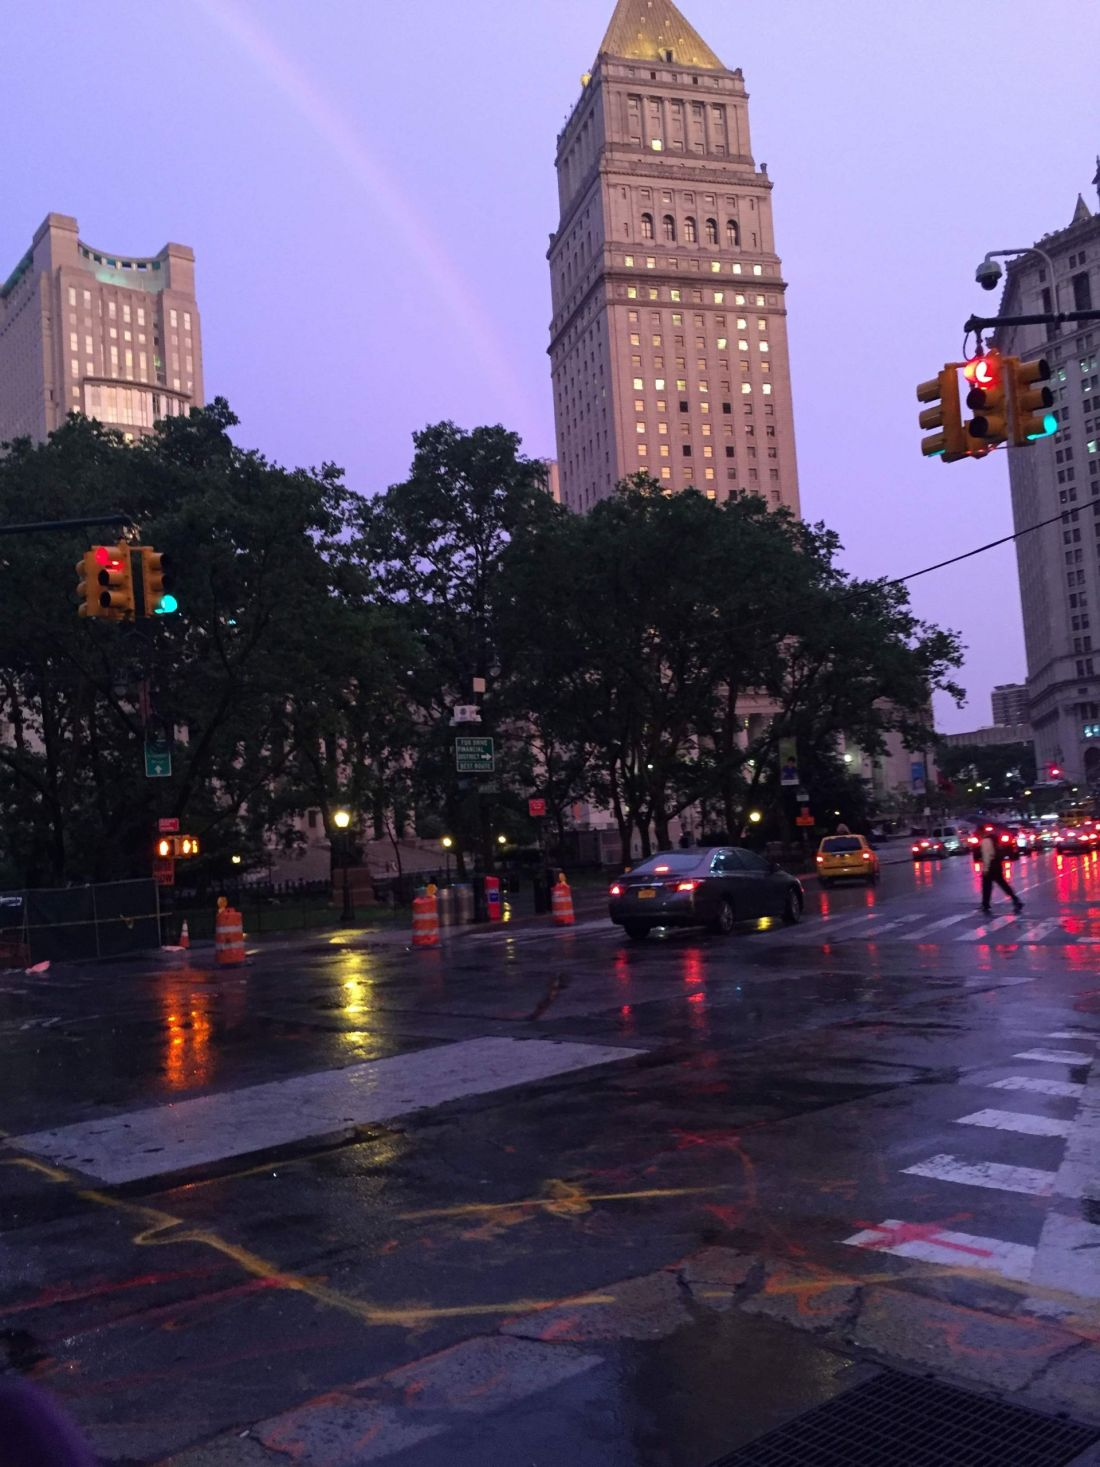 Lilac skies across New York City